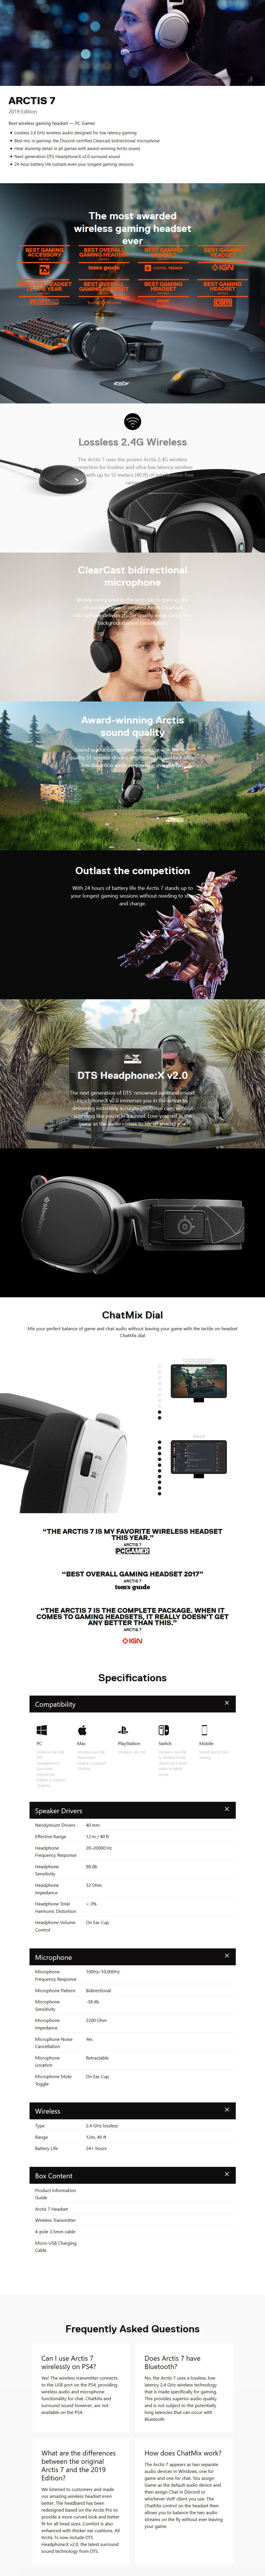 SteelSeries Arctis 7 Wireless Gaming Headset 2019 Edition - White - Desktop Overview 1